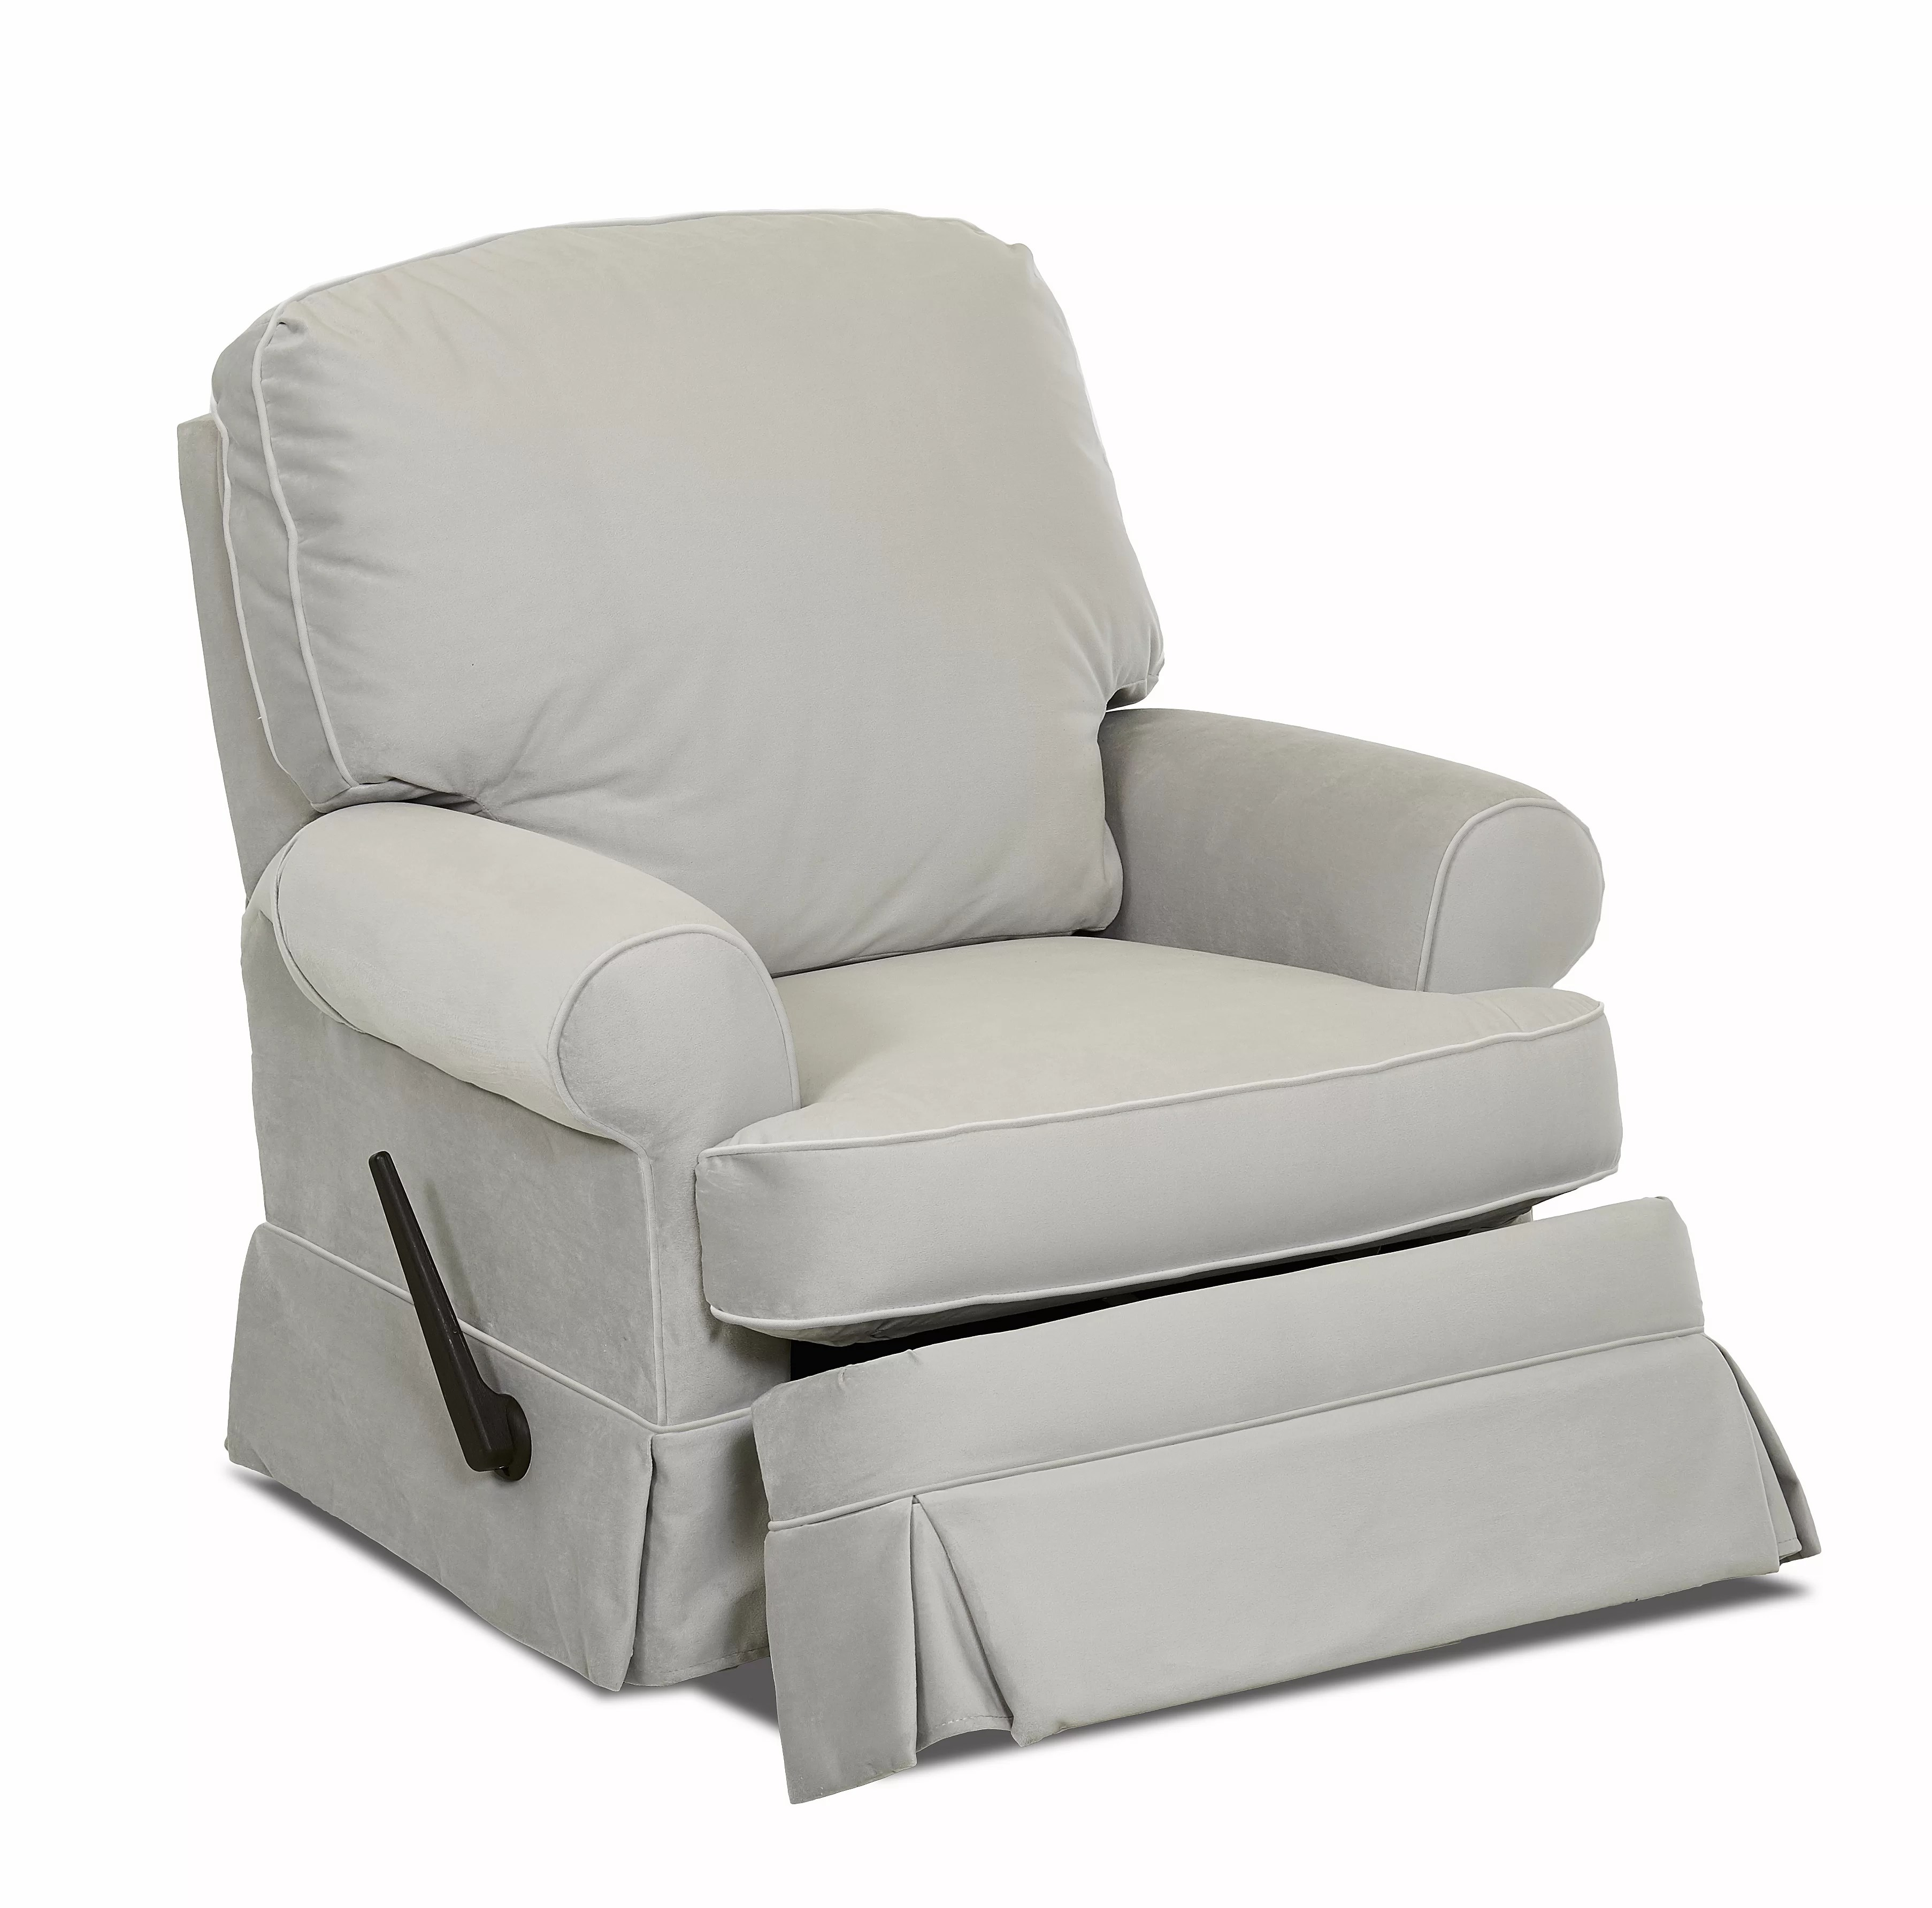 Swivel Rocker Recliner Chair Bingham Swivel Glider Recliner